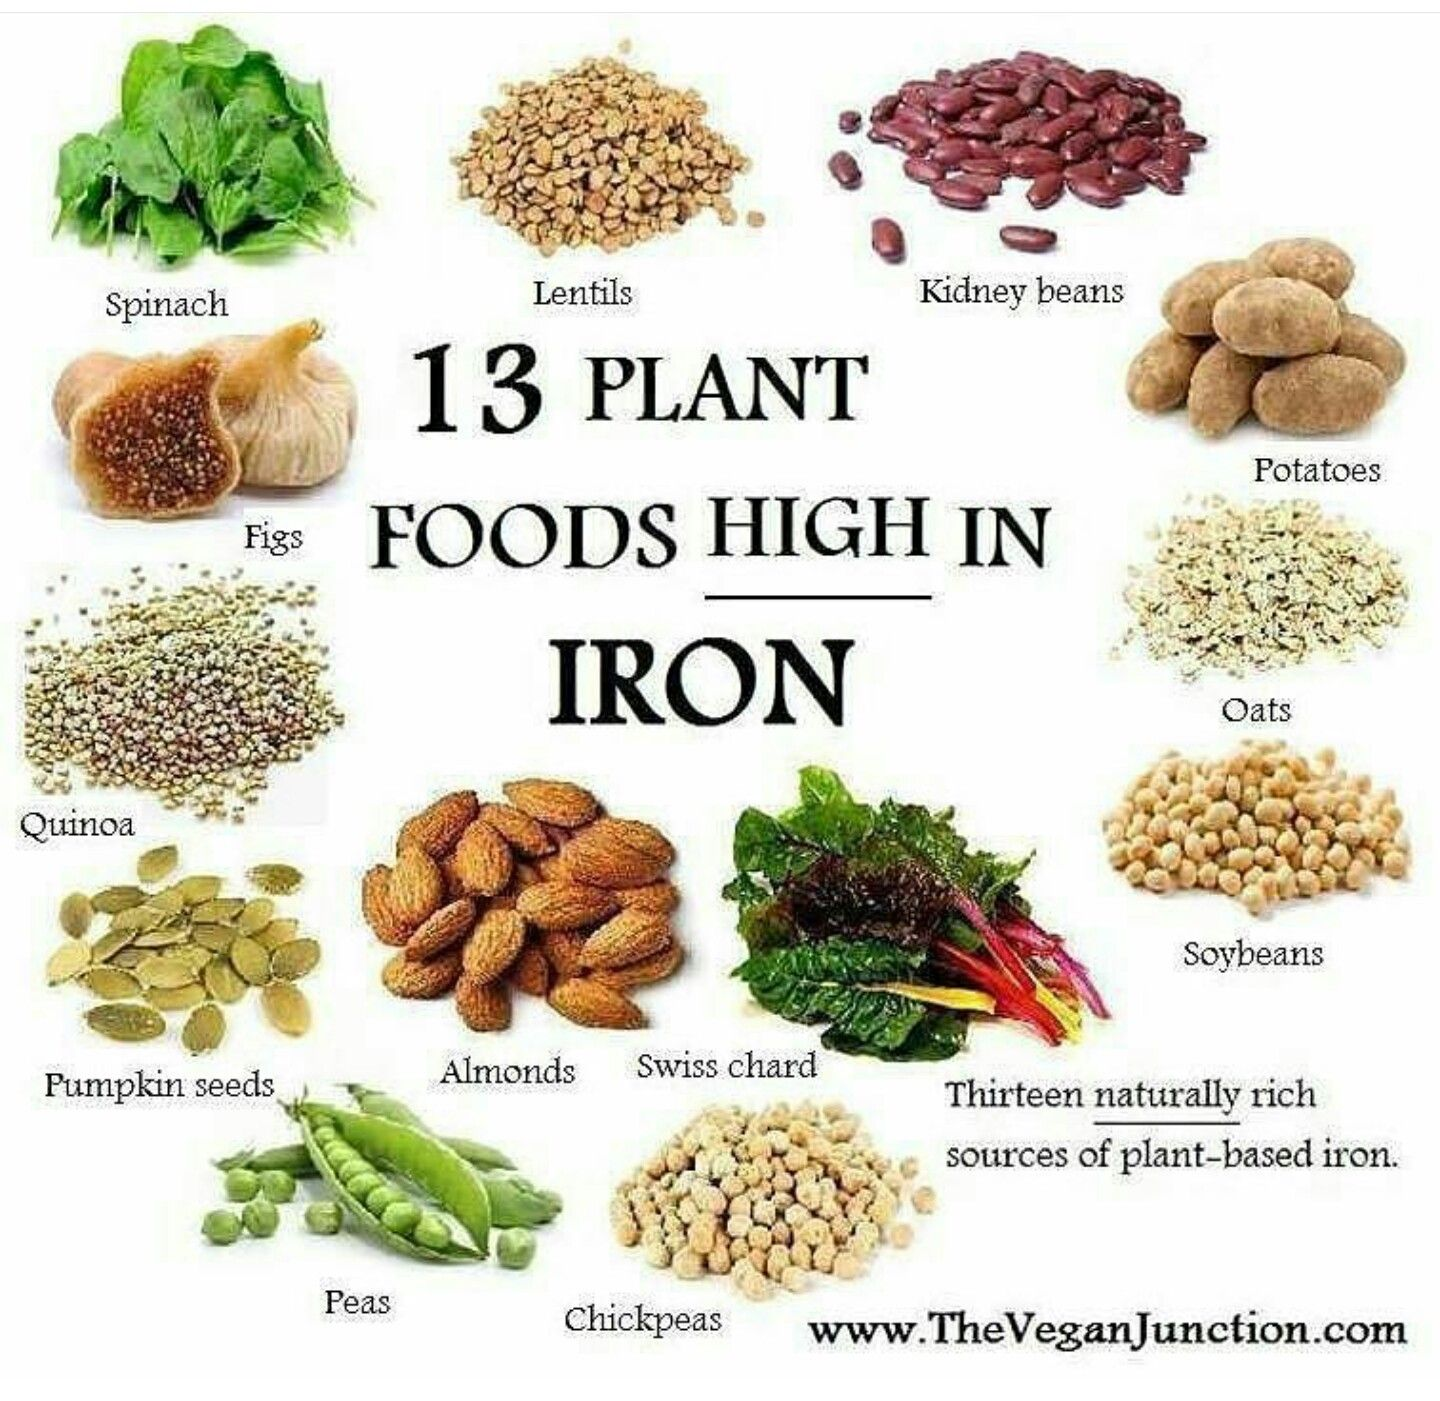 Pin by Ronan Huskey on food Vegan nutrition, Foods high